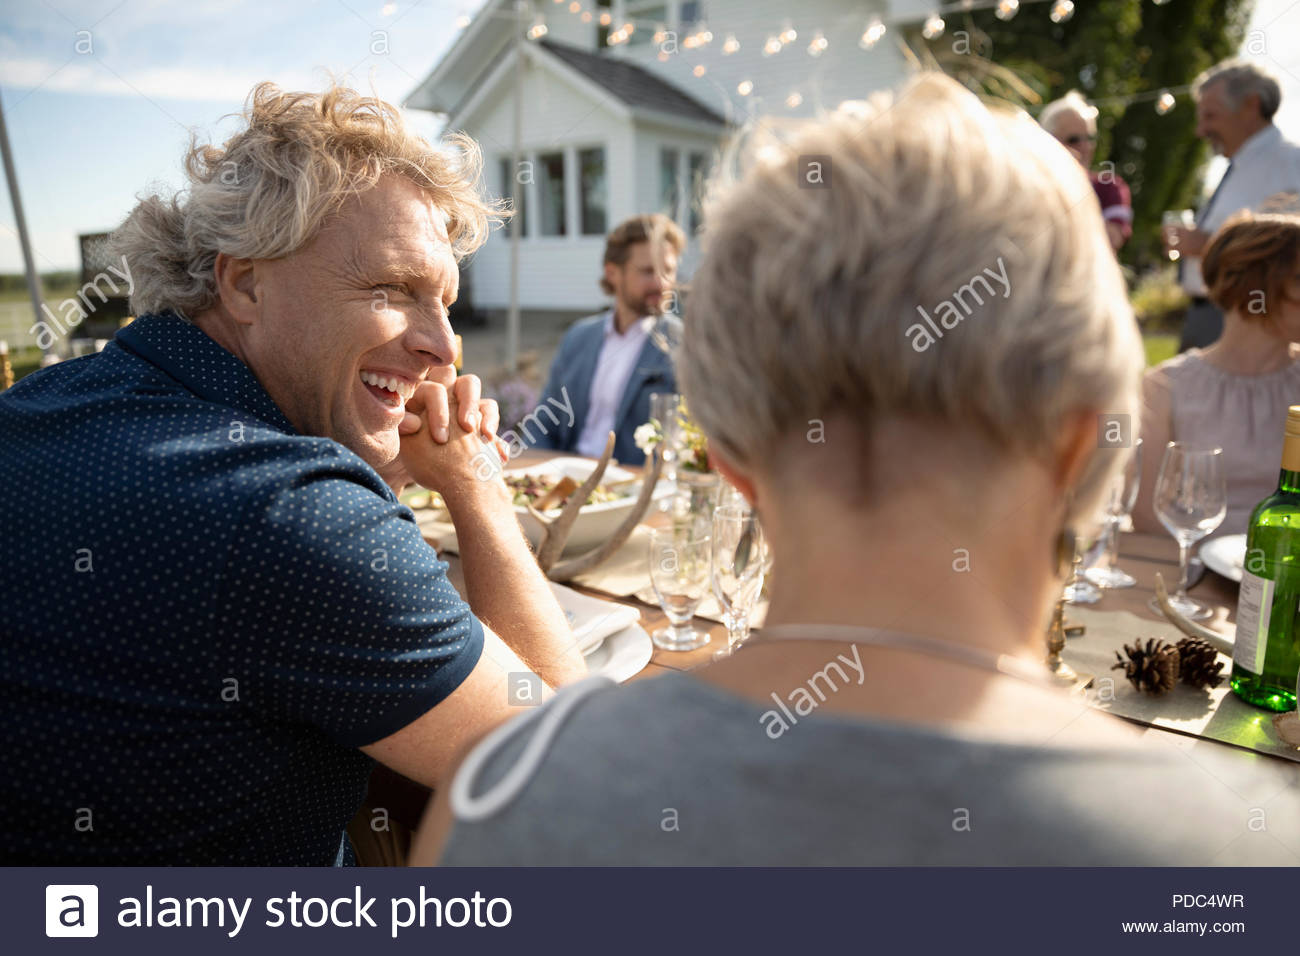 Smiling man enjoying wedding reception lunch in rural garden - Stock Image